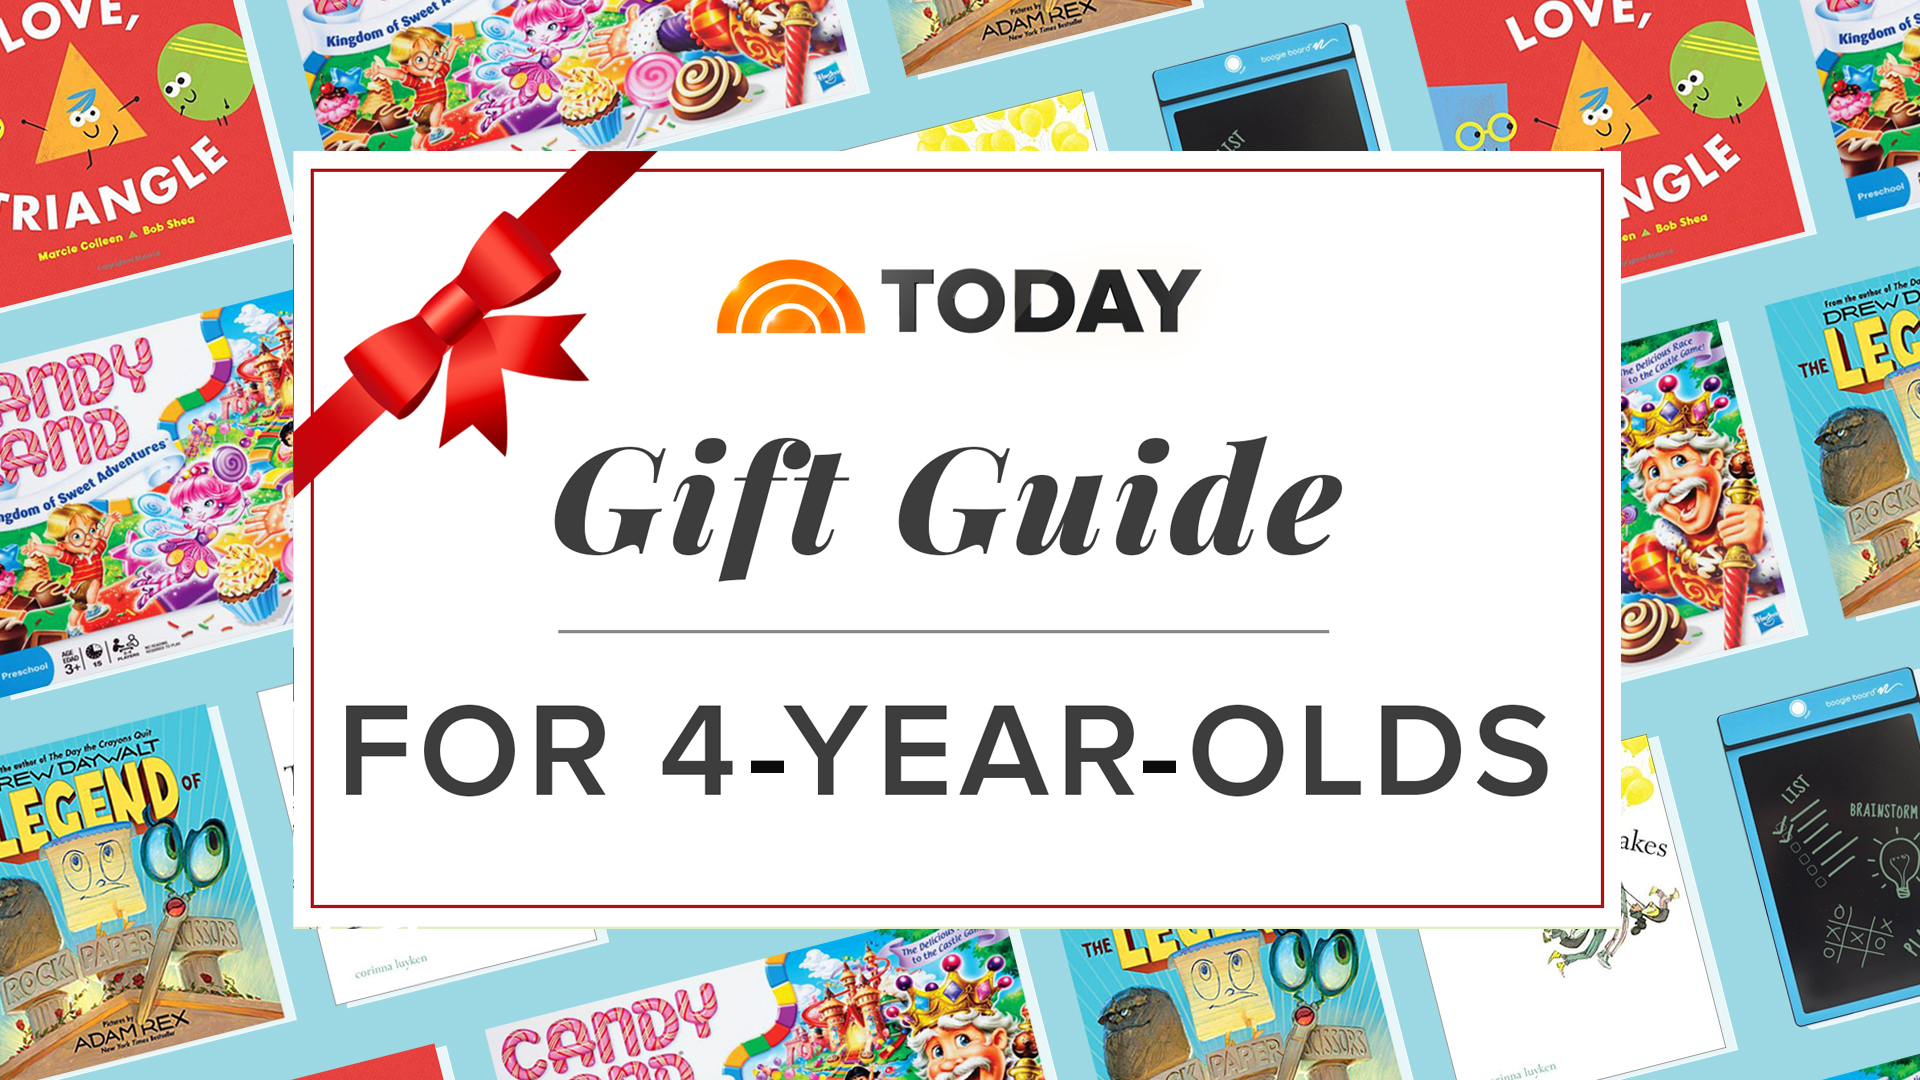 Top Gifts For 2 Year Olds: Best Gifts For 4-year-olds From Our 2017 Holiday Gift